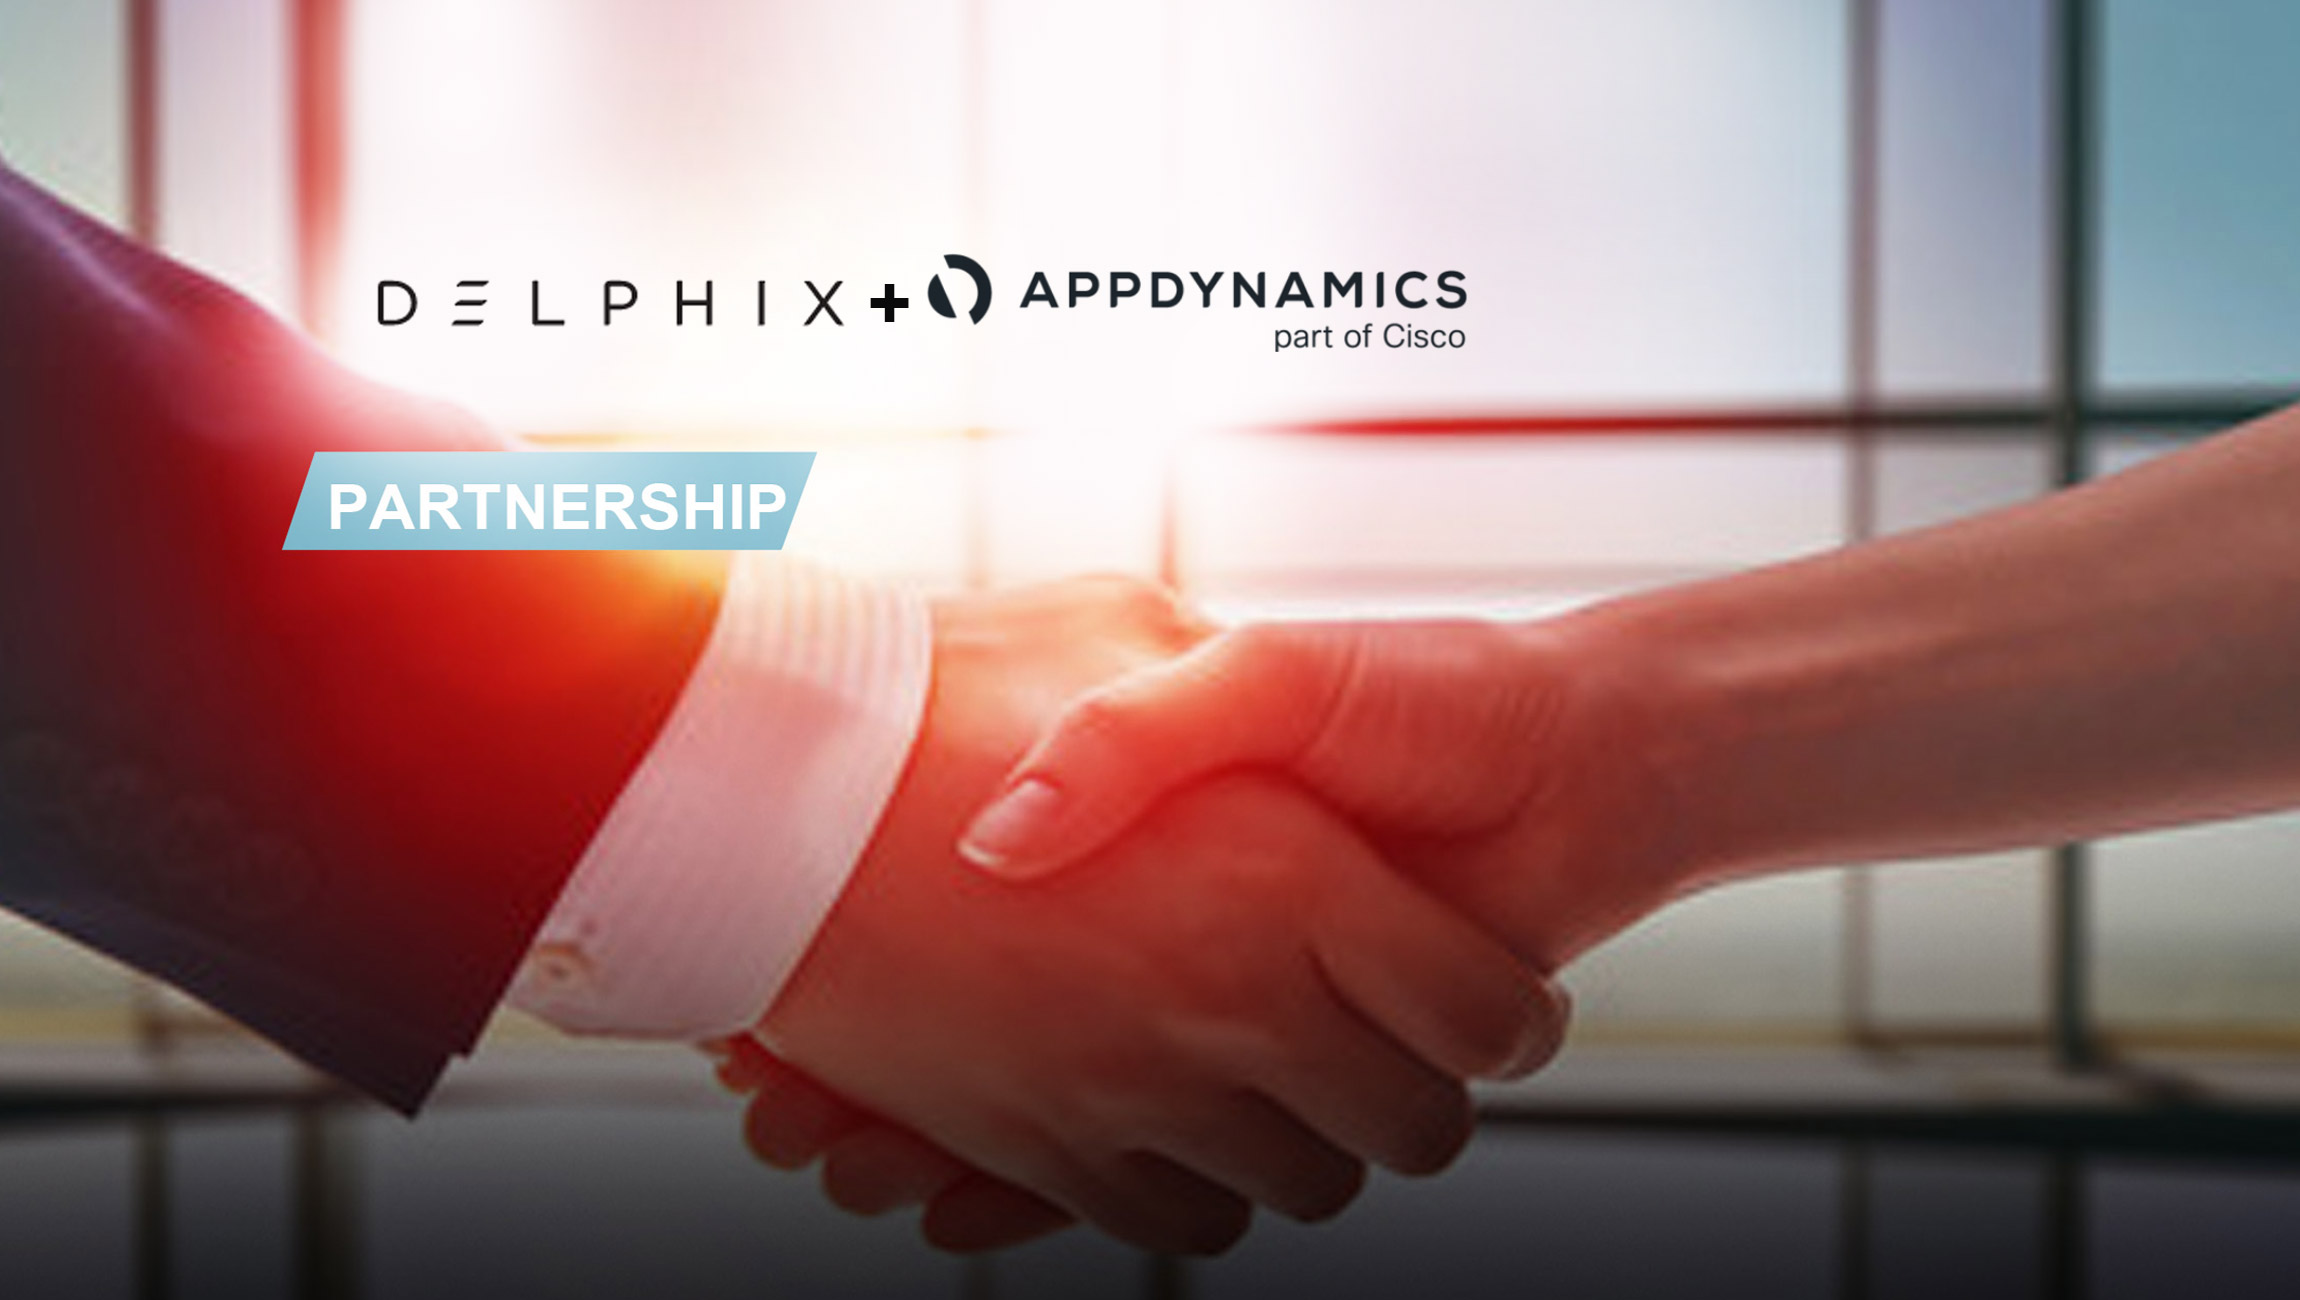 Delphix Partners With AppDynamics To Drive Application Down Time To Zero